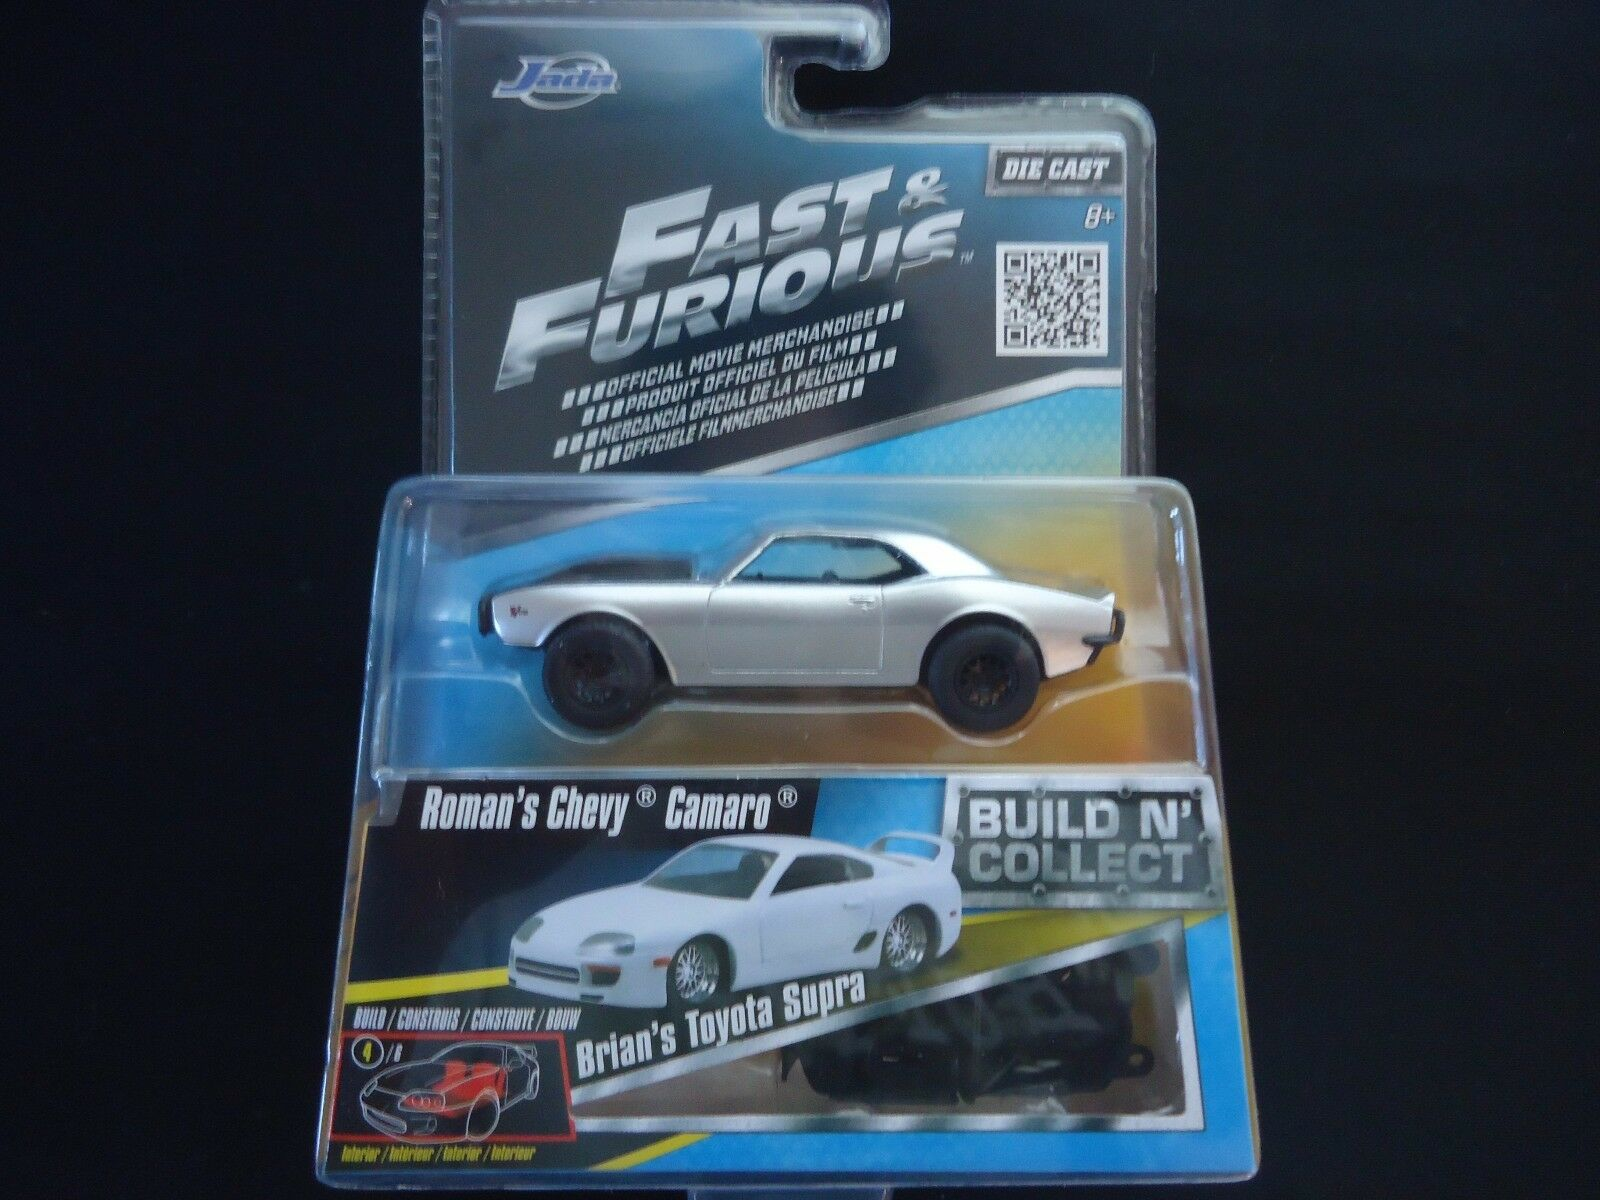 Jada Fast and Furious Assortment Set of 7 including Toyota Supra wave 1 1 55